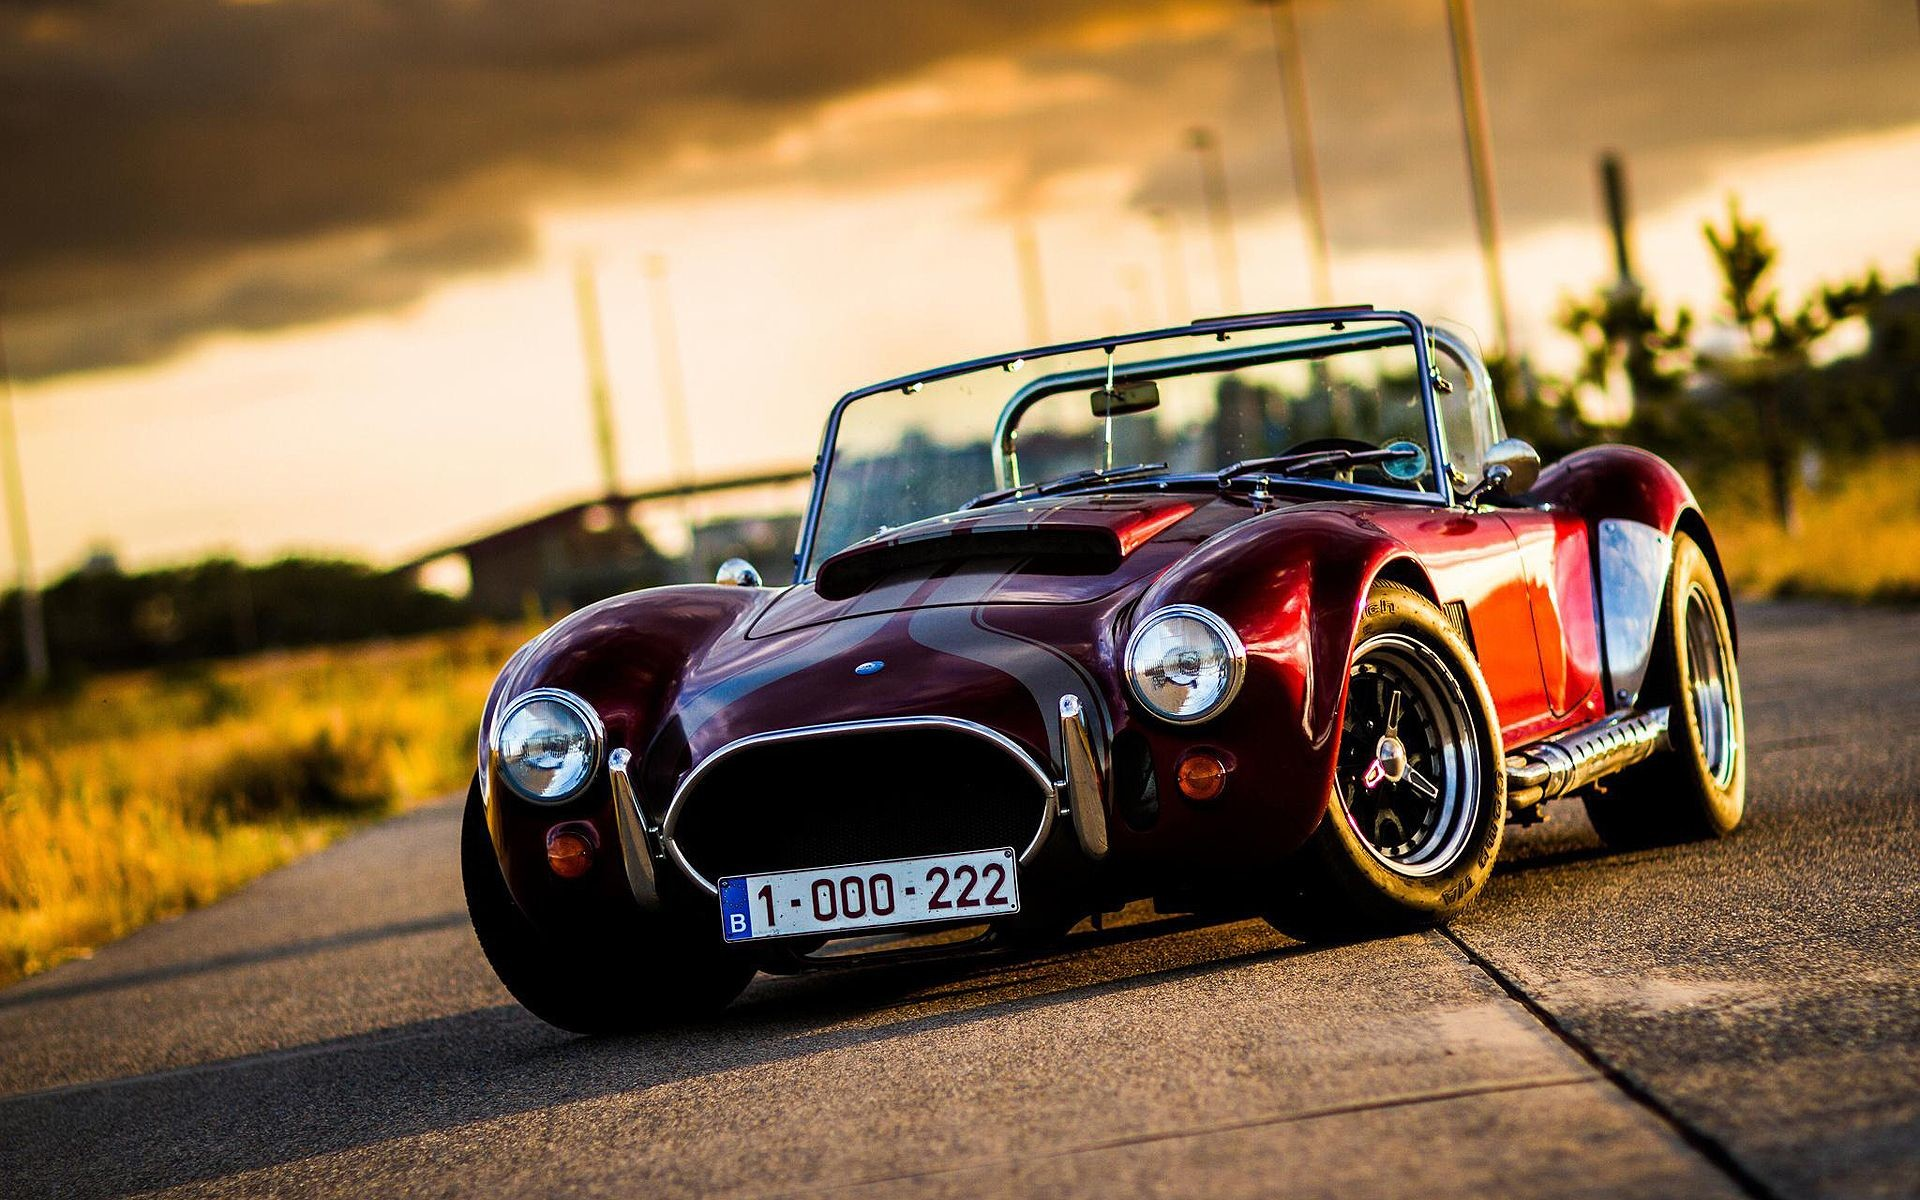 6213_Old-classic-car-small-AC-Cobra-on-the-road